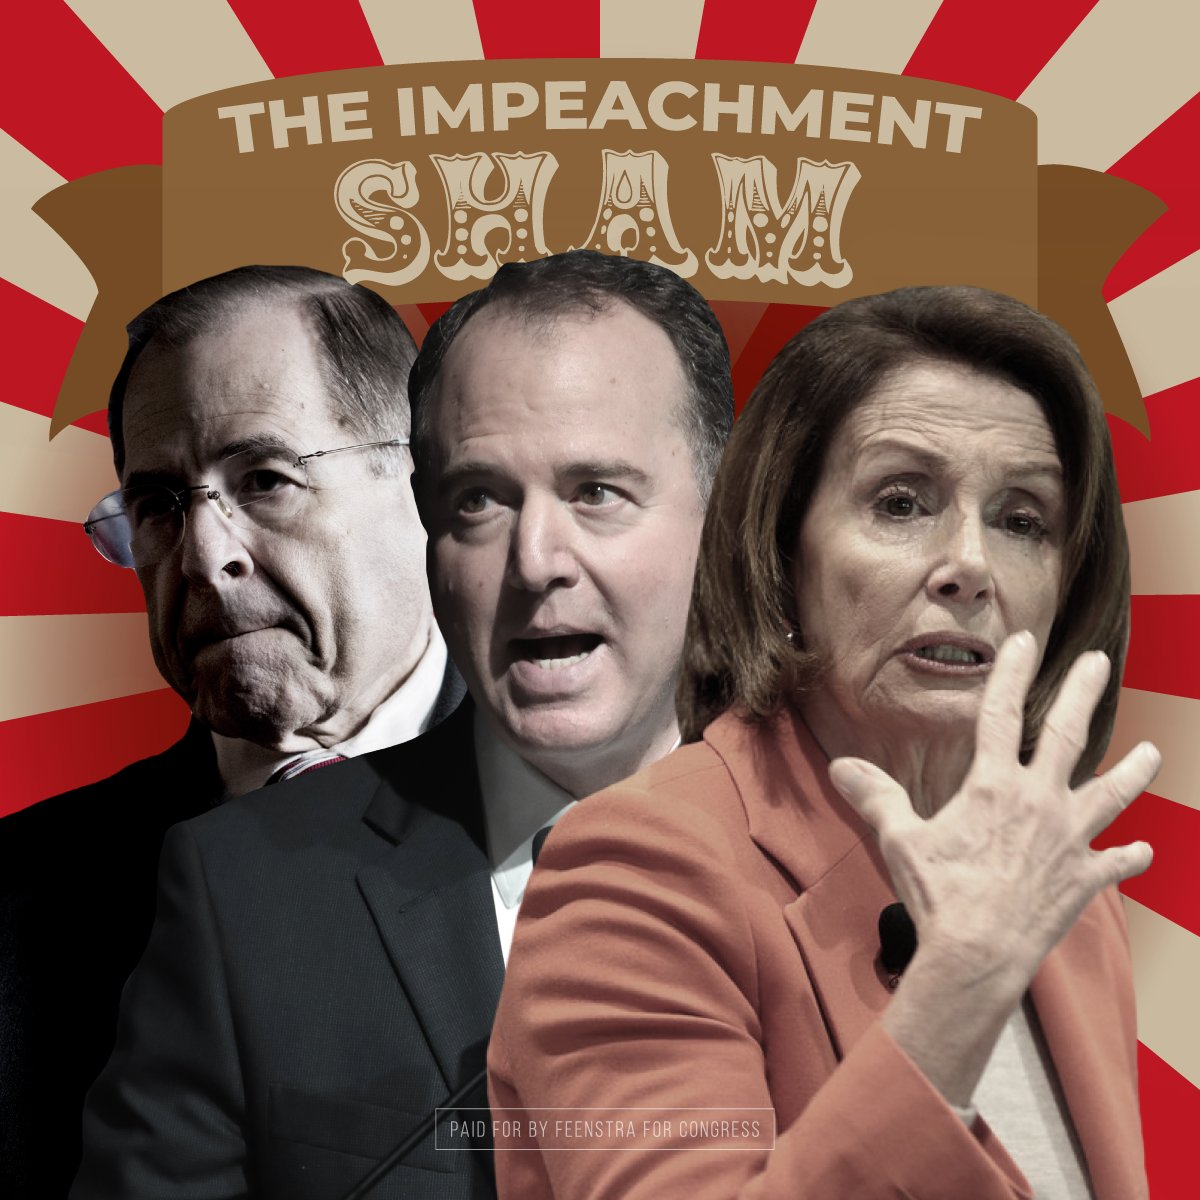 Cong Steve King was no where to be found in today's Judiciary Comm for the impeachment sham. Why? His bizarre actions got him kicked off his committees. King failed @realDonaldTrump and has left Iowans without a voice. It's time for new effective conservative leadership. #ia04